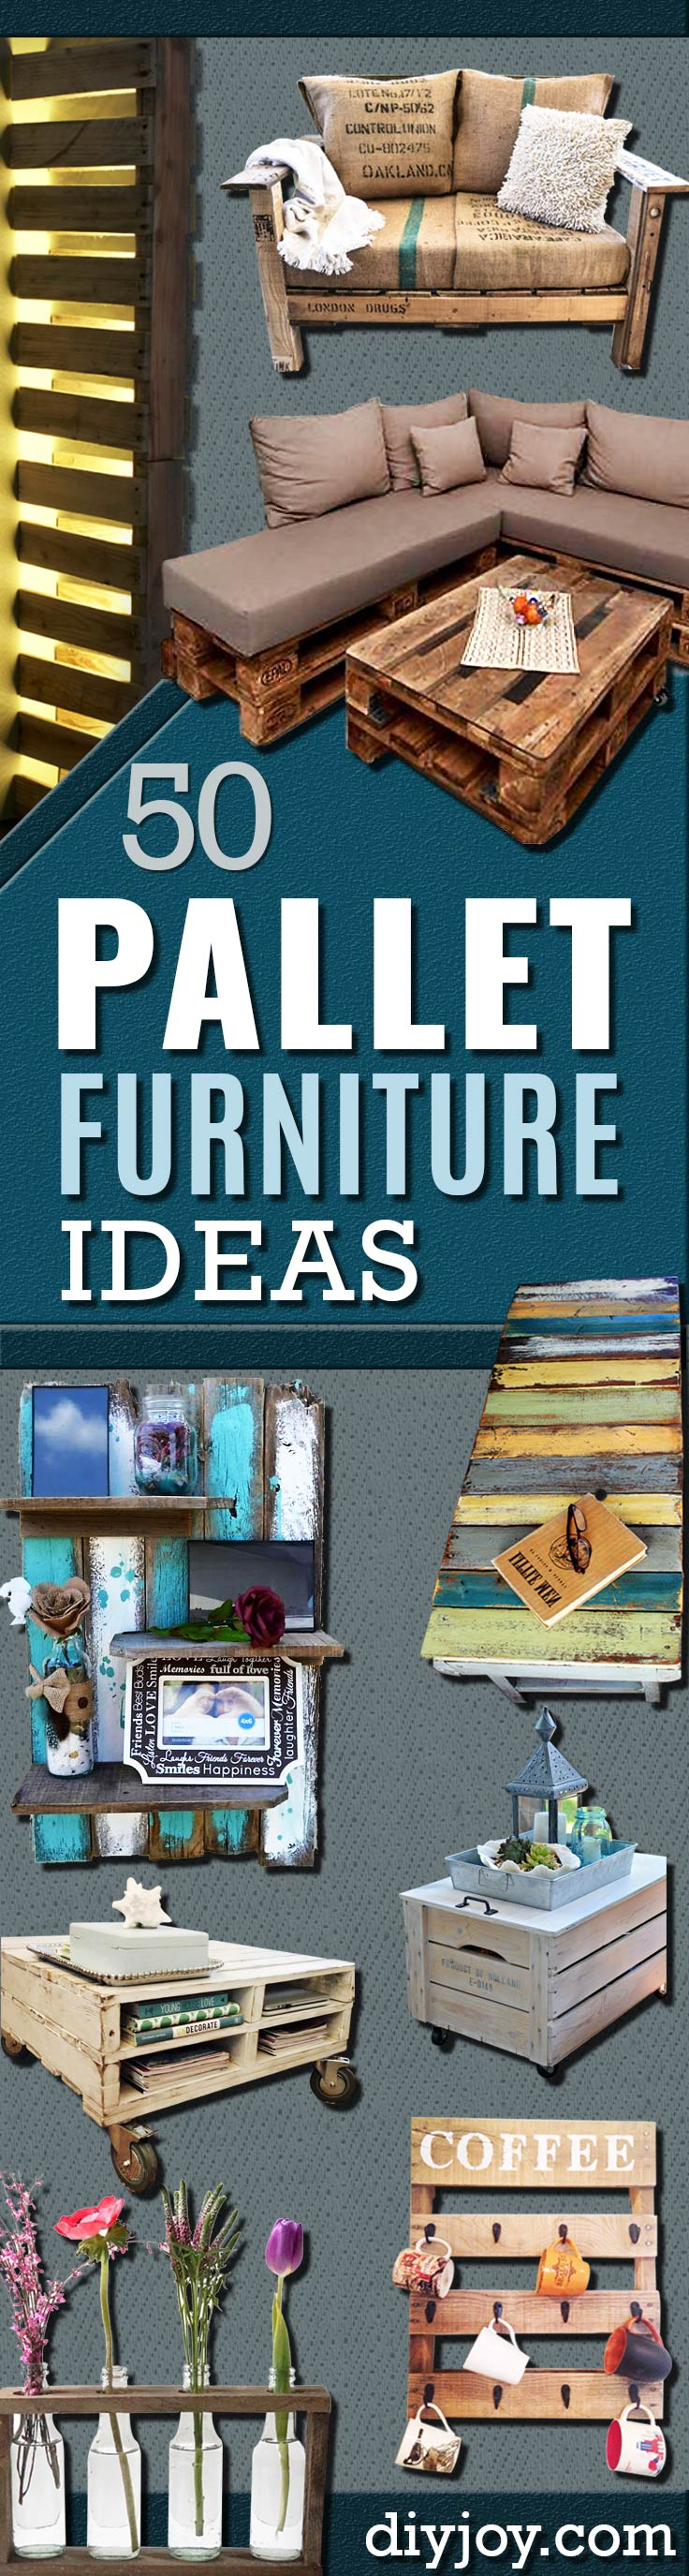 do it yourself furniture projects. DIY Pallet Furniture Ideas - Best Do It Yourself Projects Made With Wooden Pallets Indoor